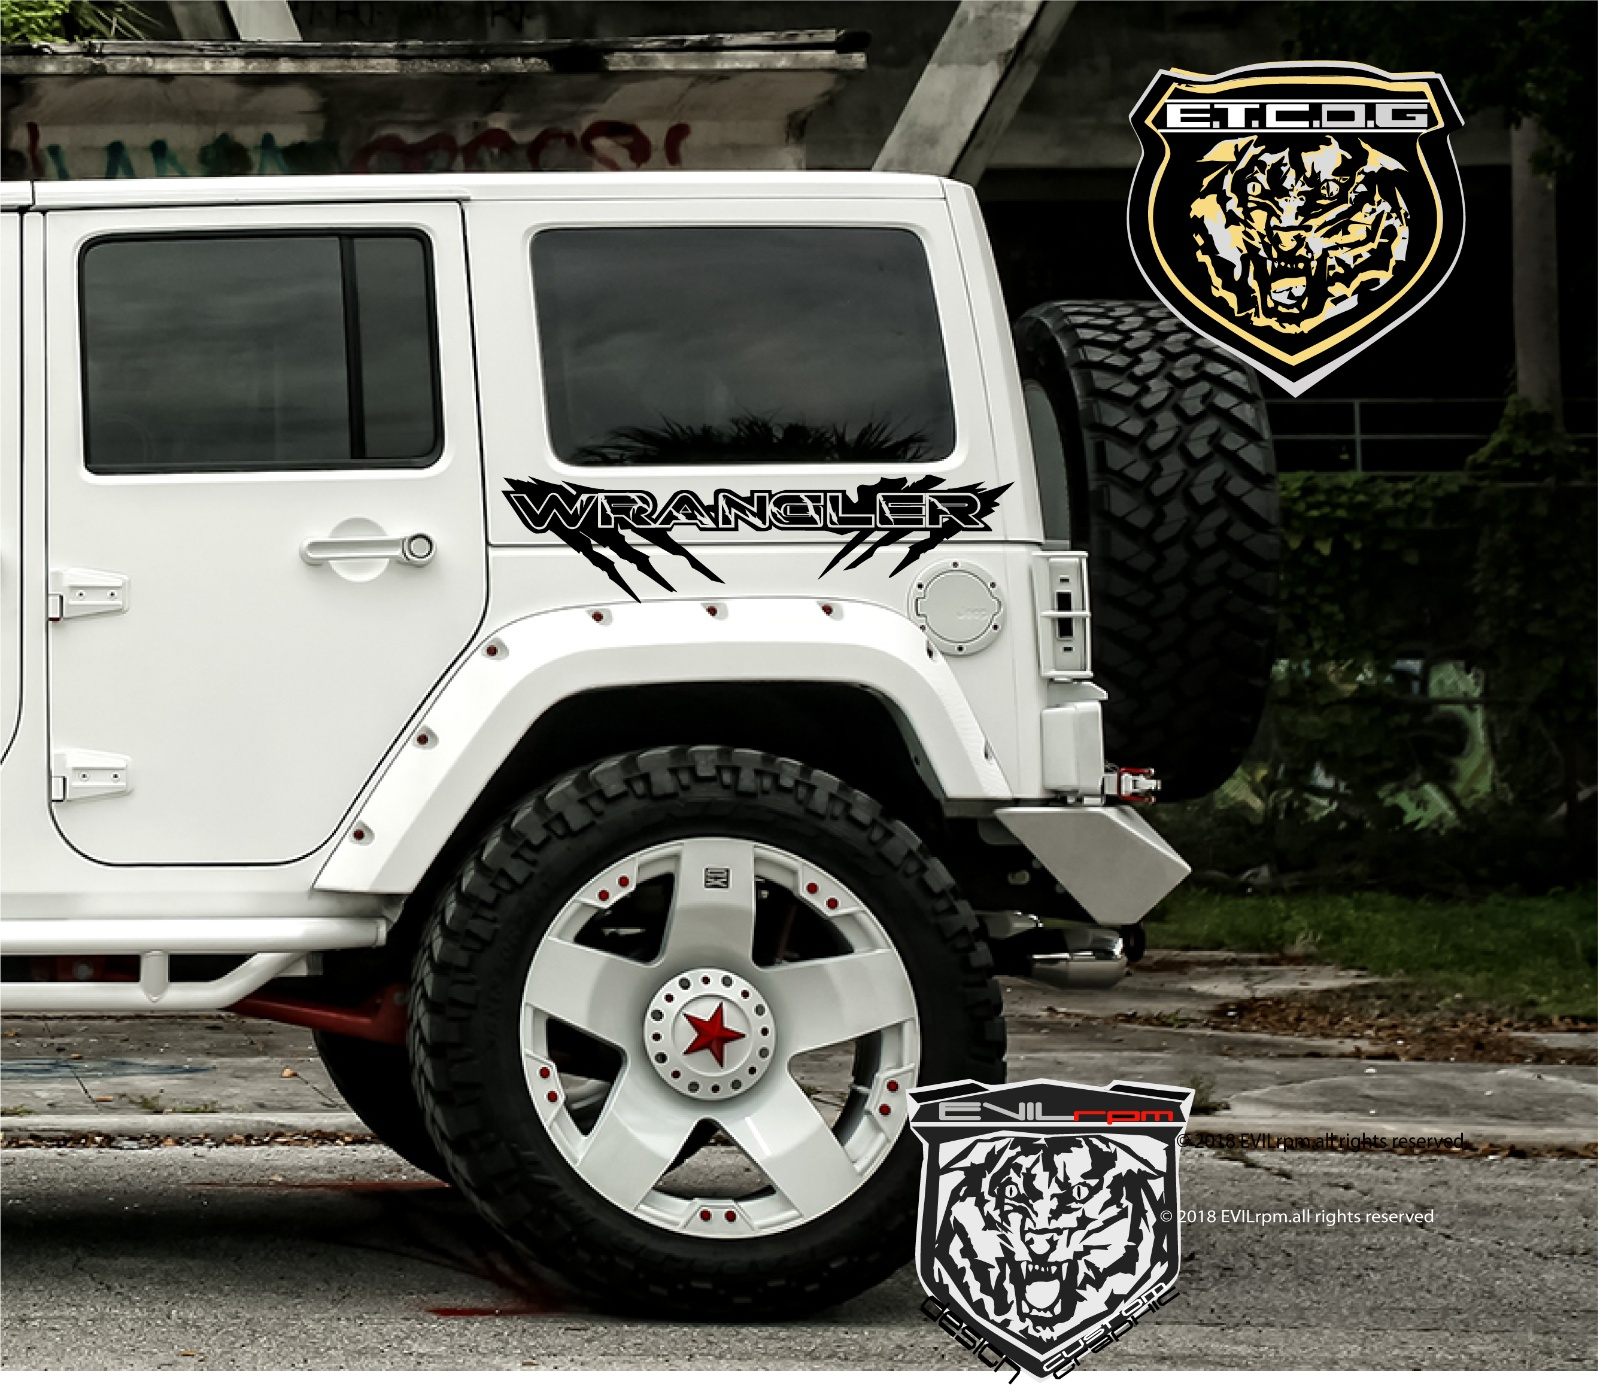 Jeep Wrangler UNLIMITED vinyl graphic decal sticker set